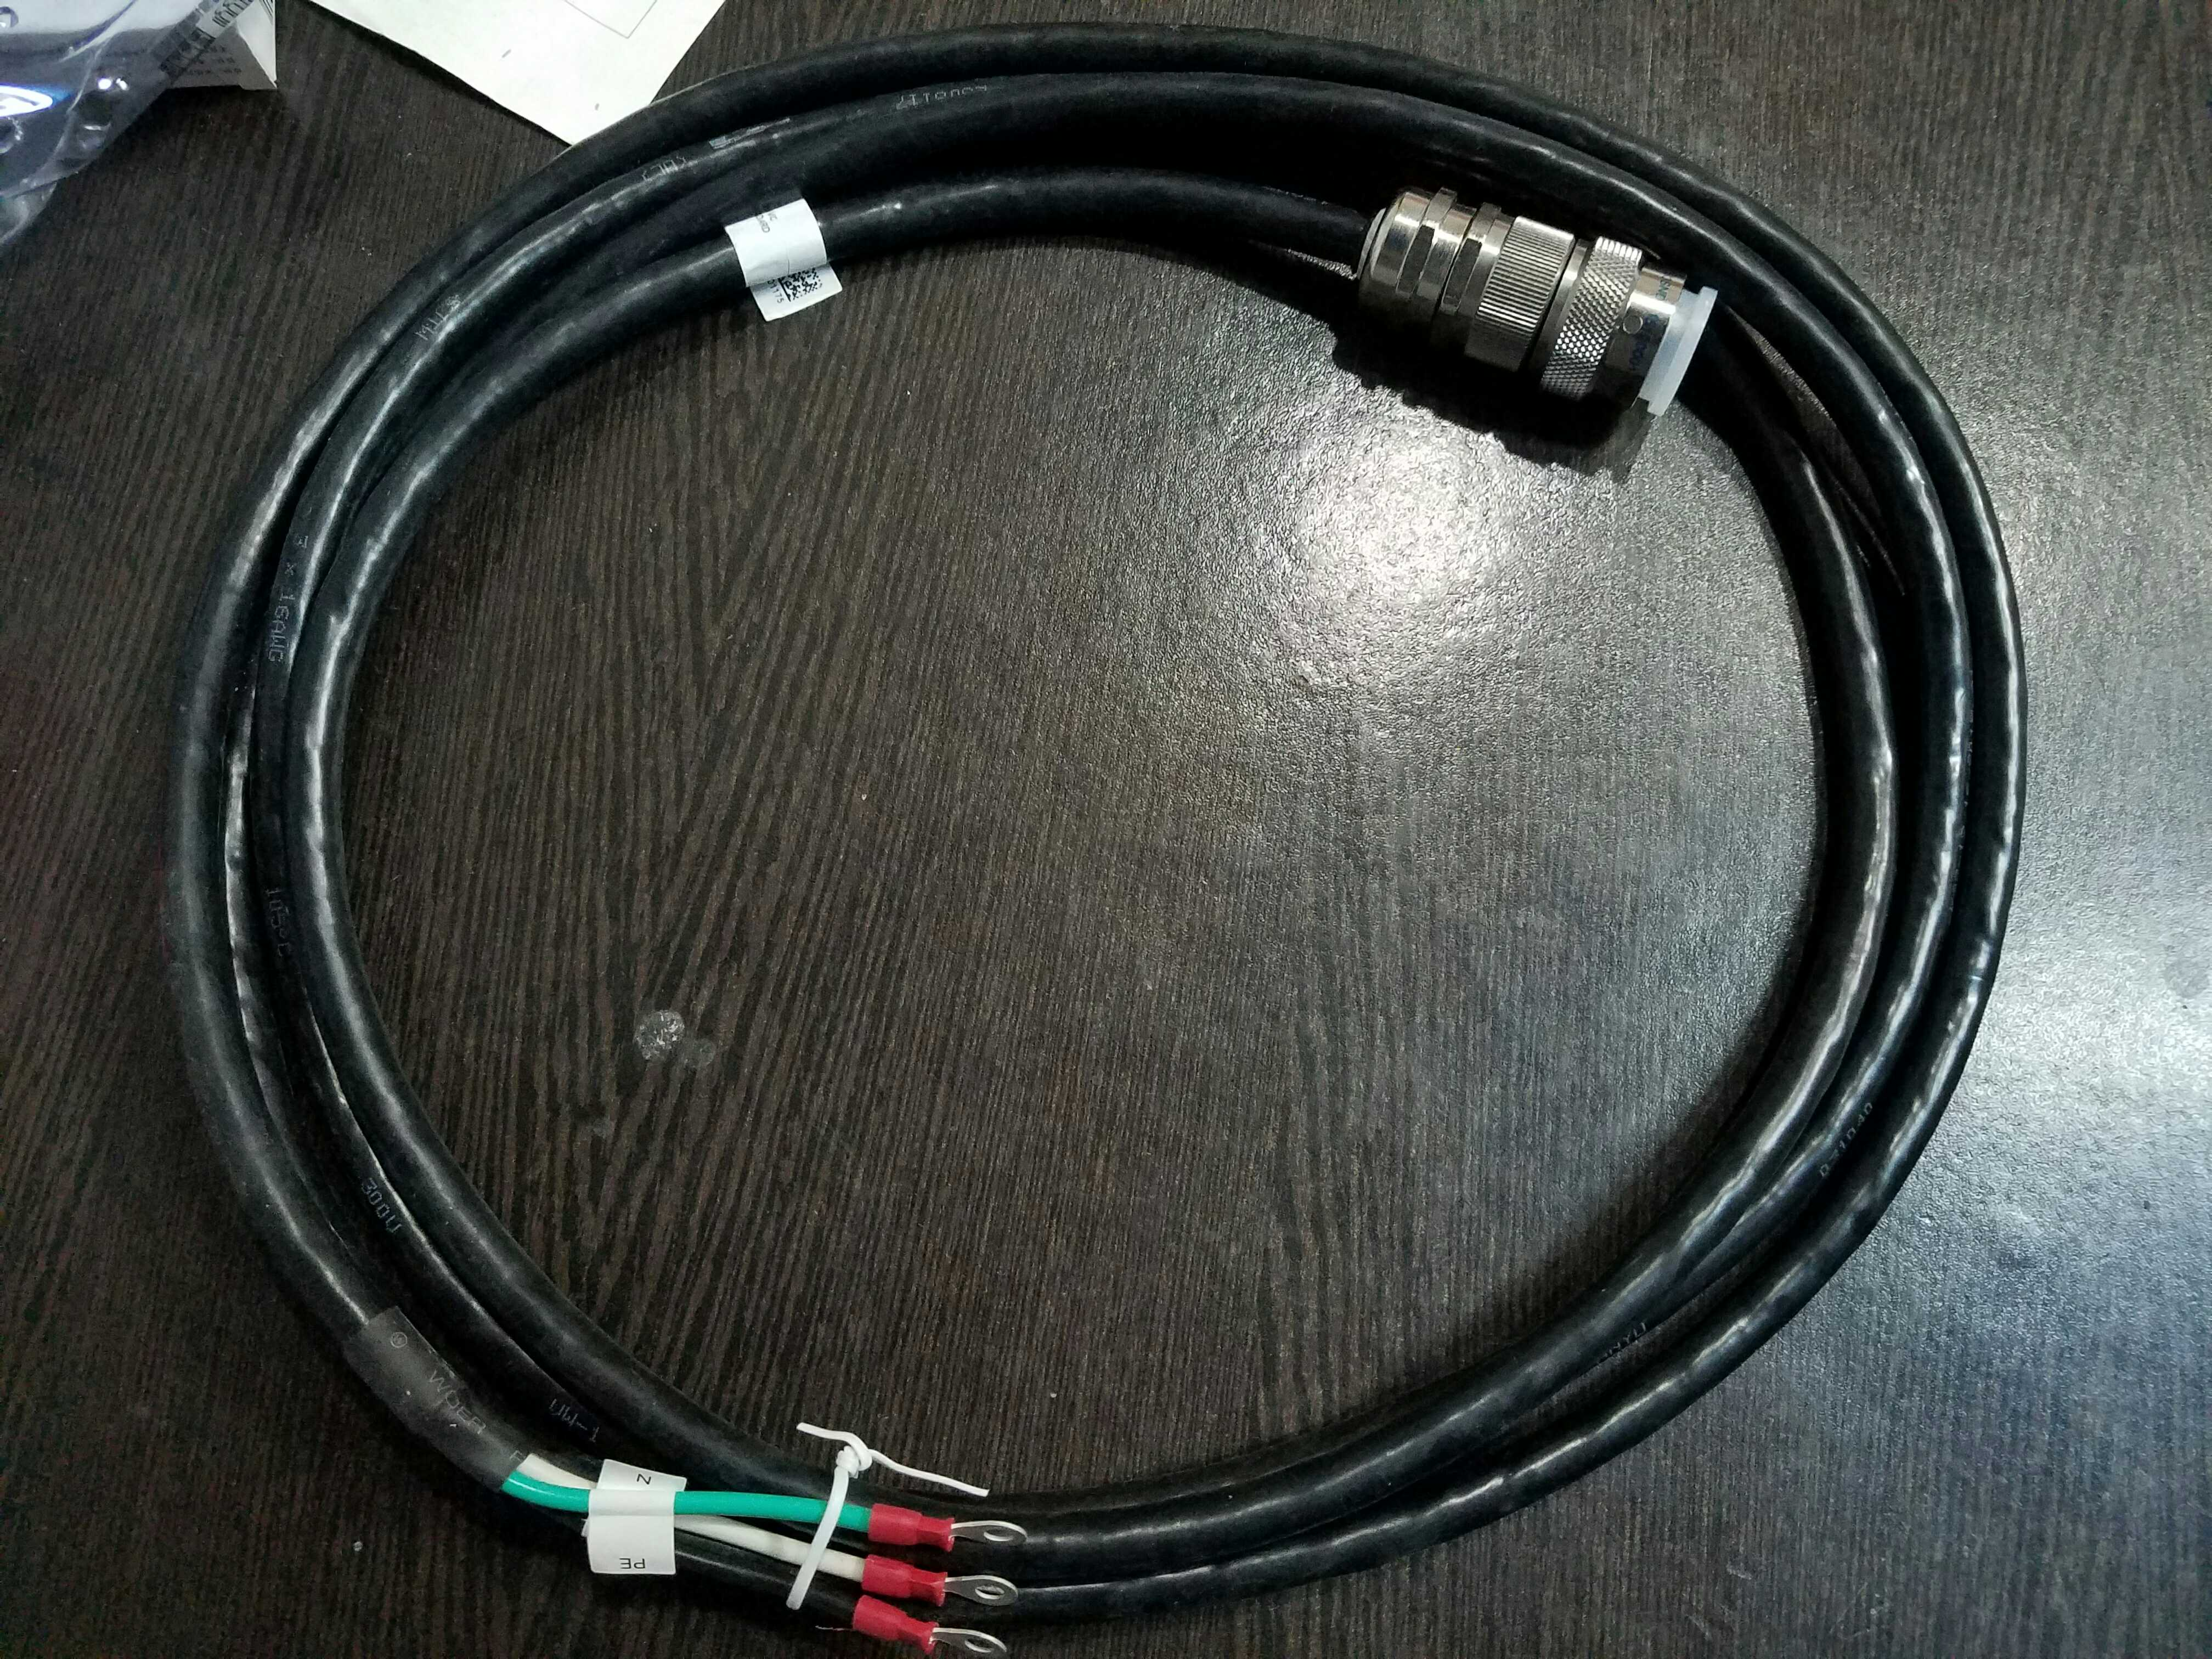 Usd 2982 Zte Rru Ac Power Cord Connector 3 Hole Wiring Plug Lightbox Moreview